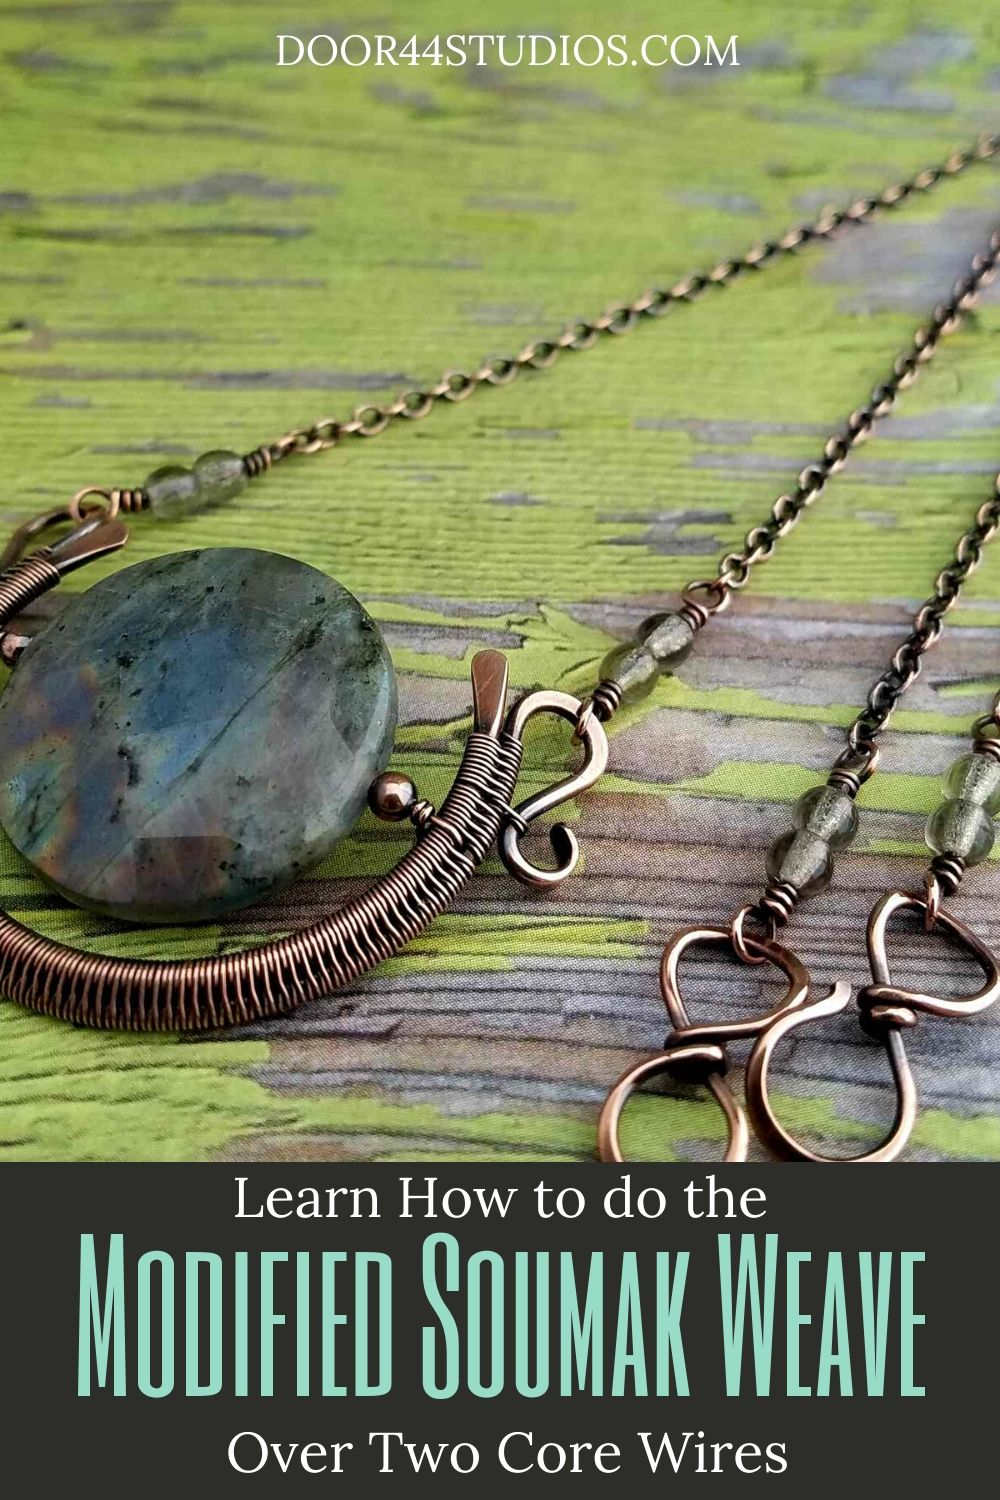 The Modified Soumak Weave is my favorite weave. I use it frequently in my jewelry tutorials. Learn the 2-core version of the Modified Soumak weave in this free tutorial, which is written for both left-handed and right-handed weavers.